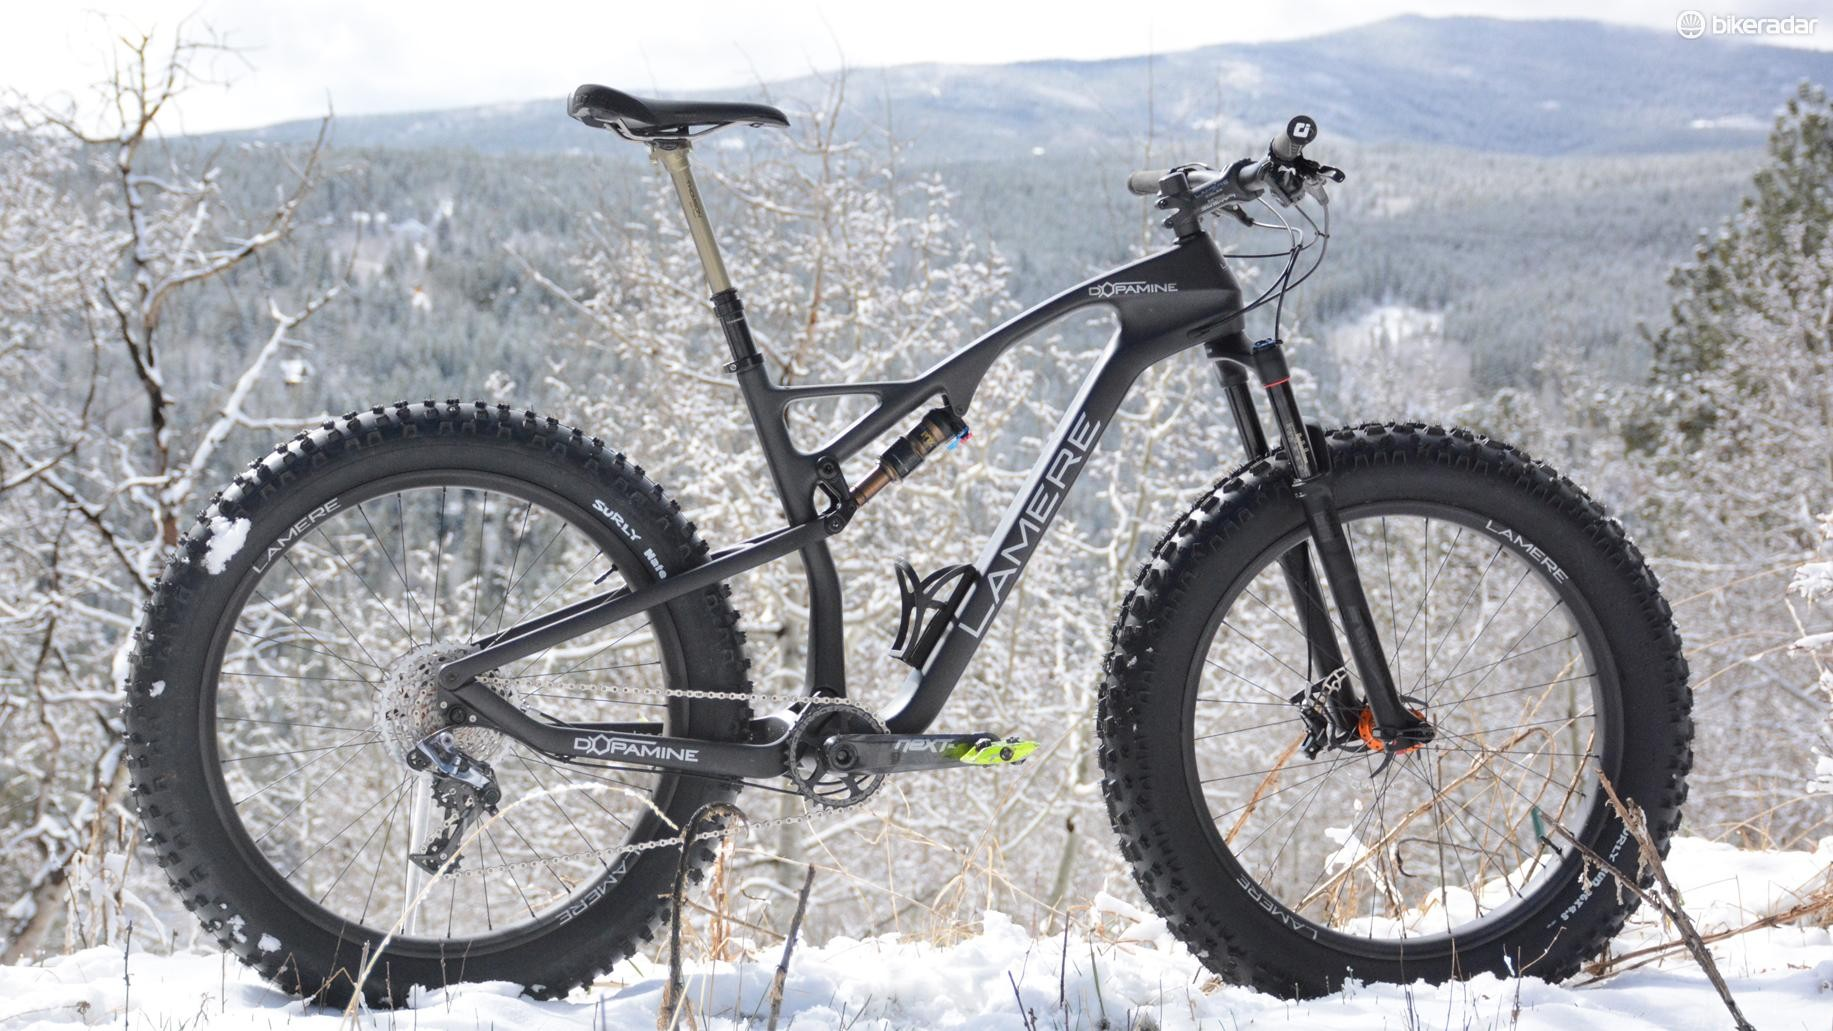 LaMere Cycles claims its Dopamine full-suspension fat bike is the lightest available